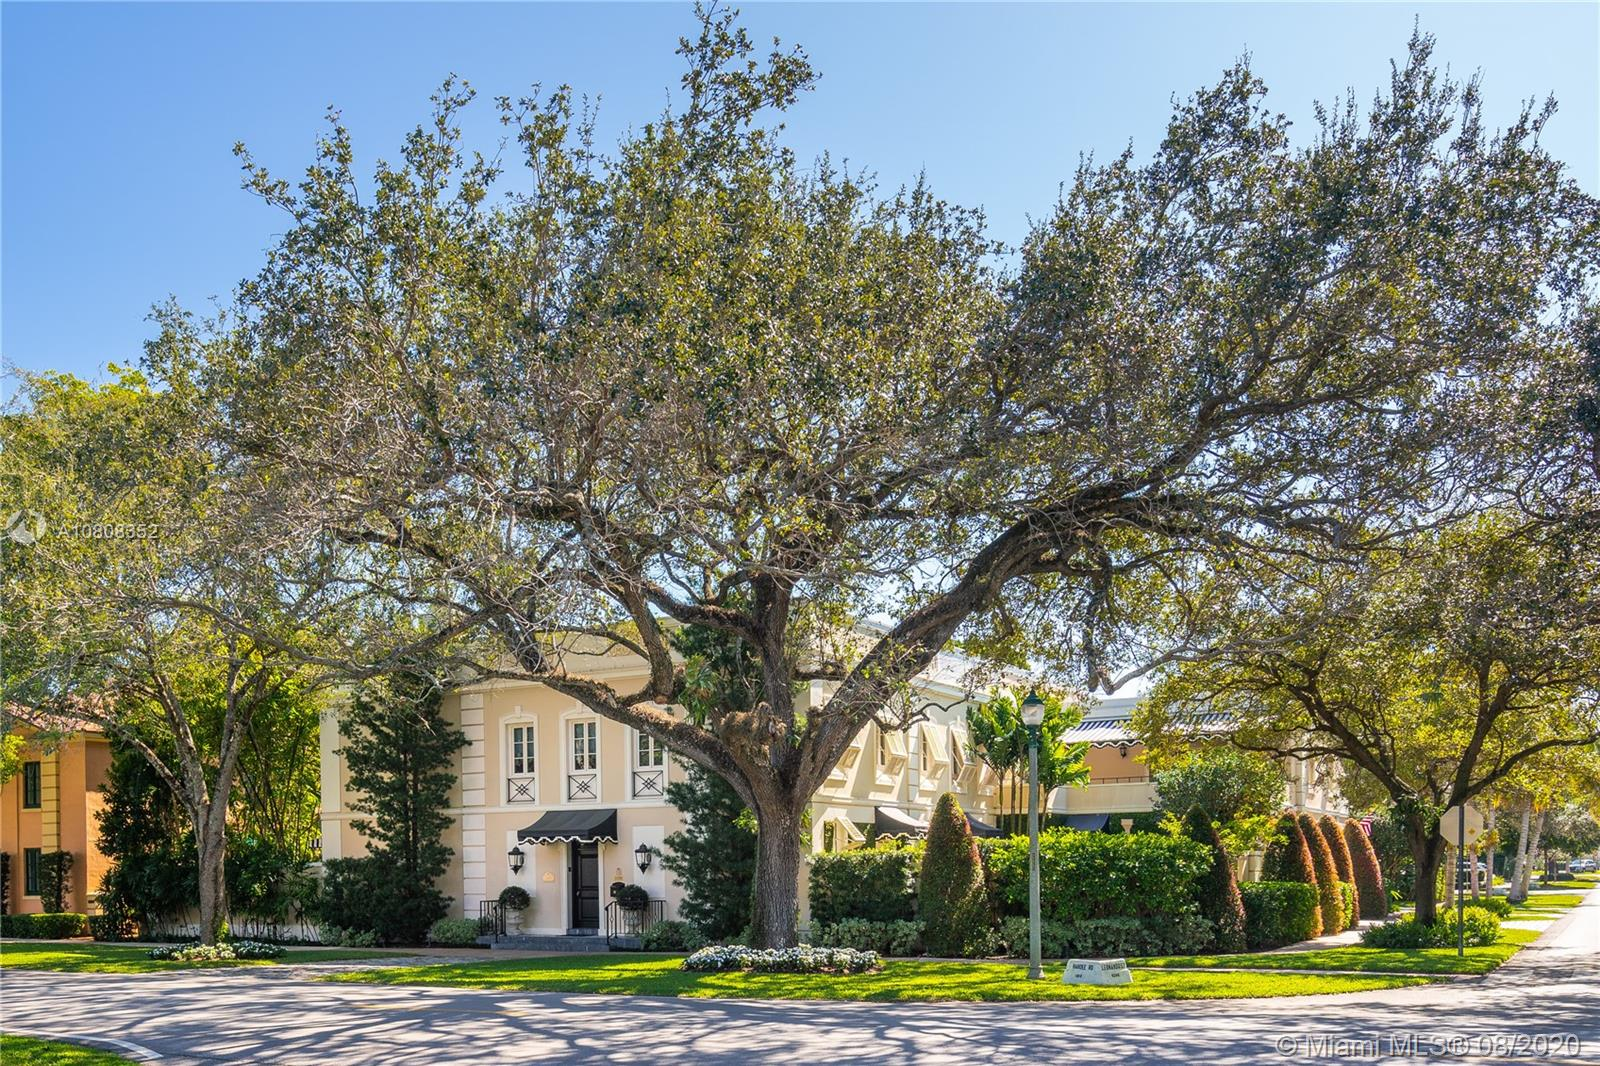 1030 Hardee Rd, Coral Gables, Florida